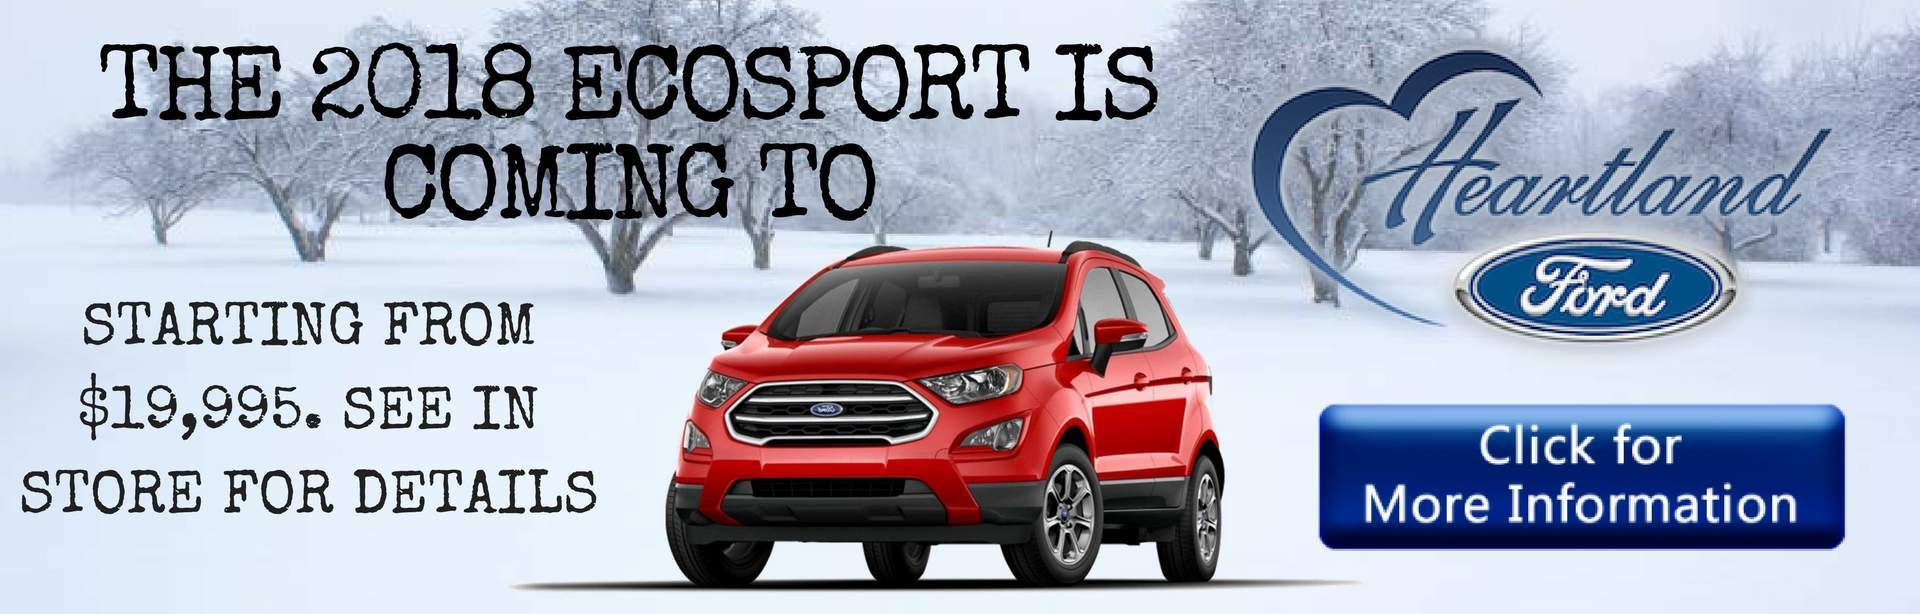 2018 Ford Ecosport Heartland Ford Sales